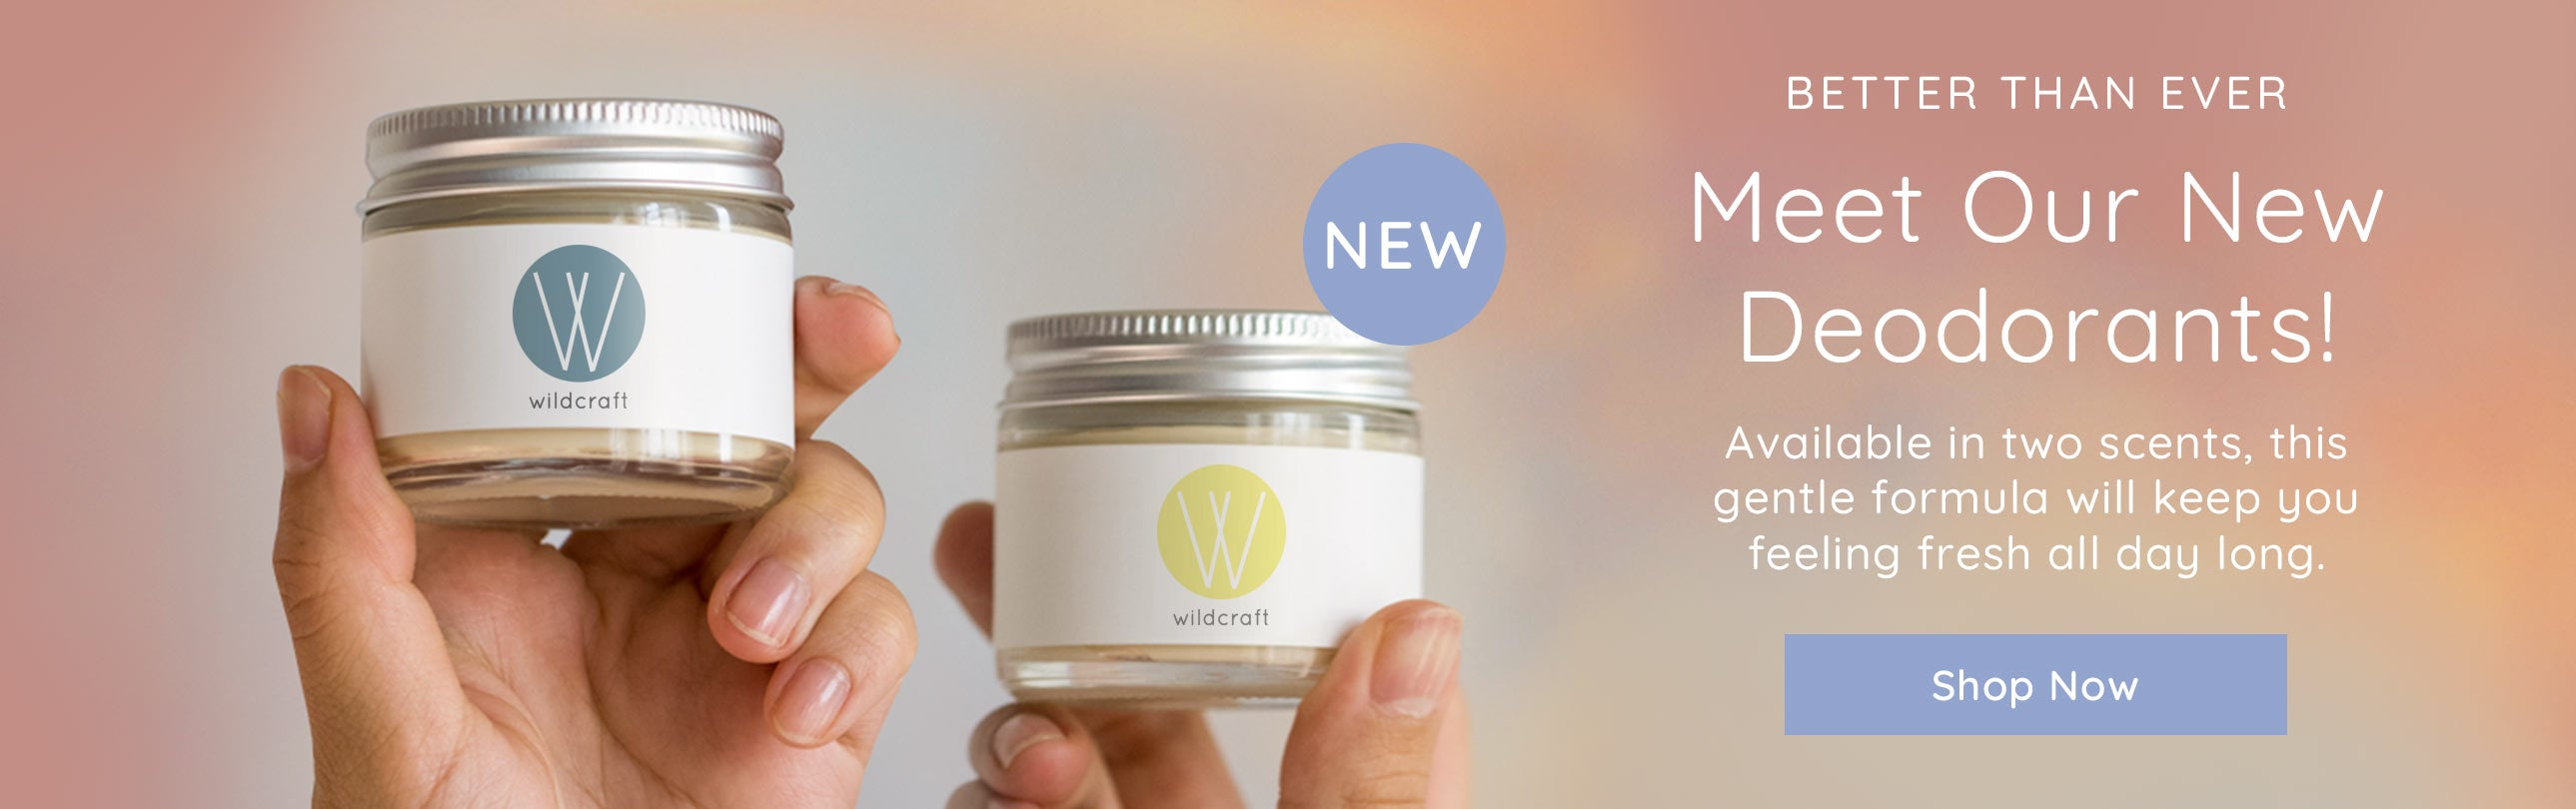 Our new Deodorants are here!